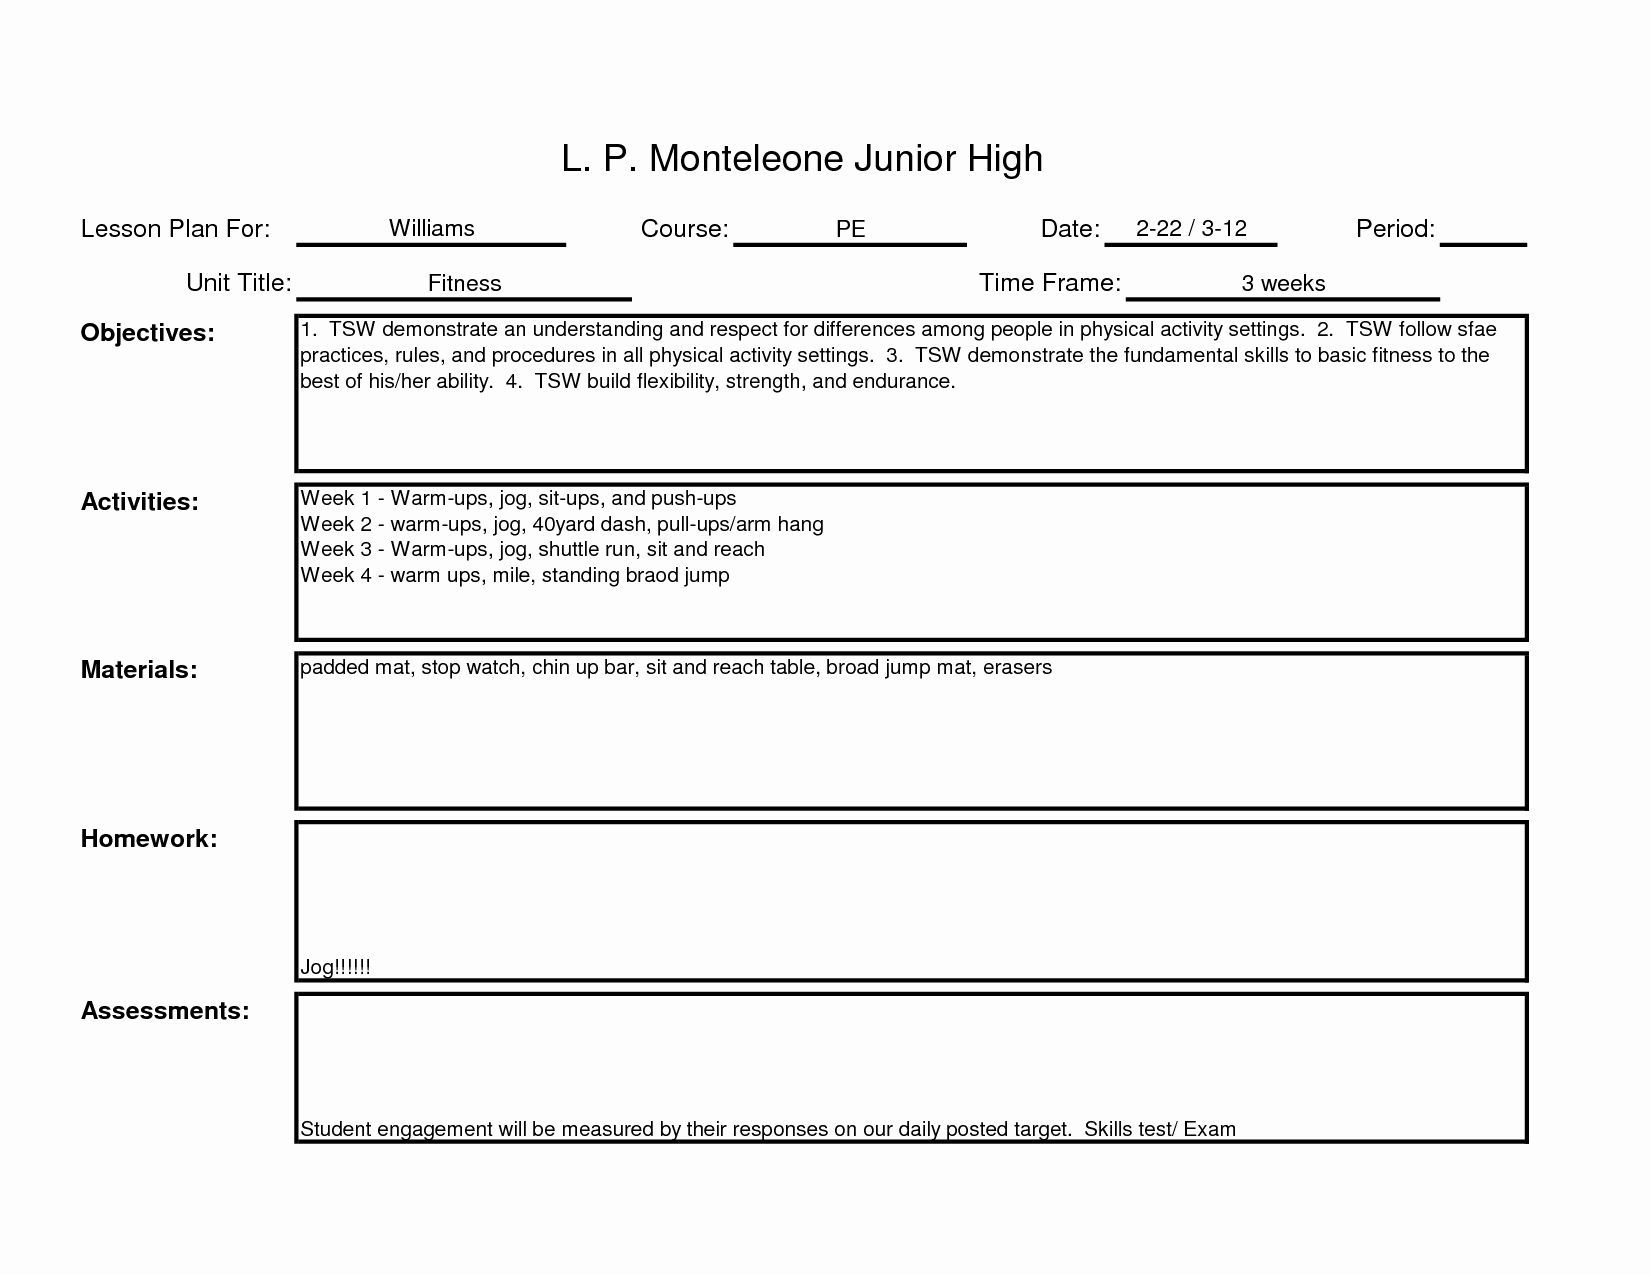 Pe Lesson Plan Template in 2020 Business plan template